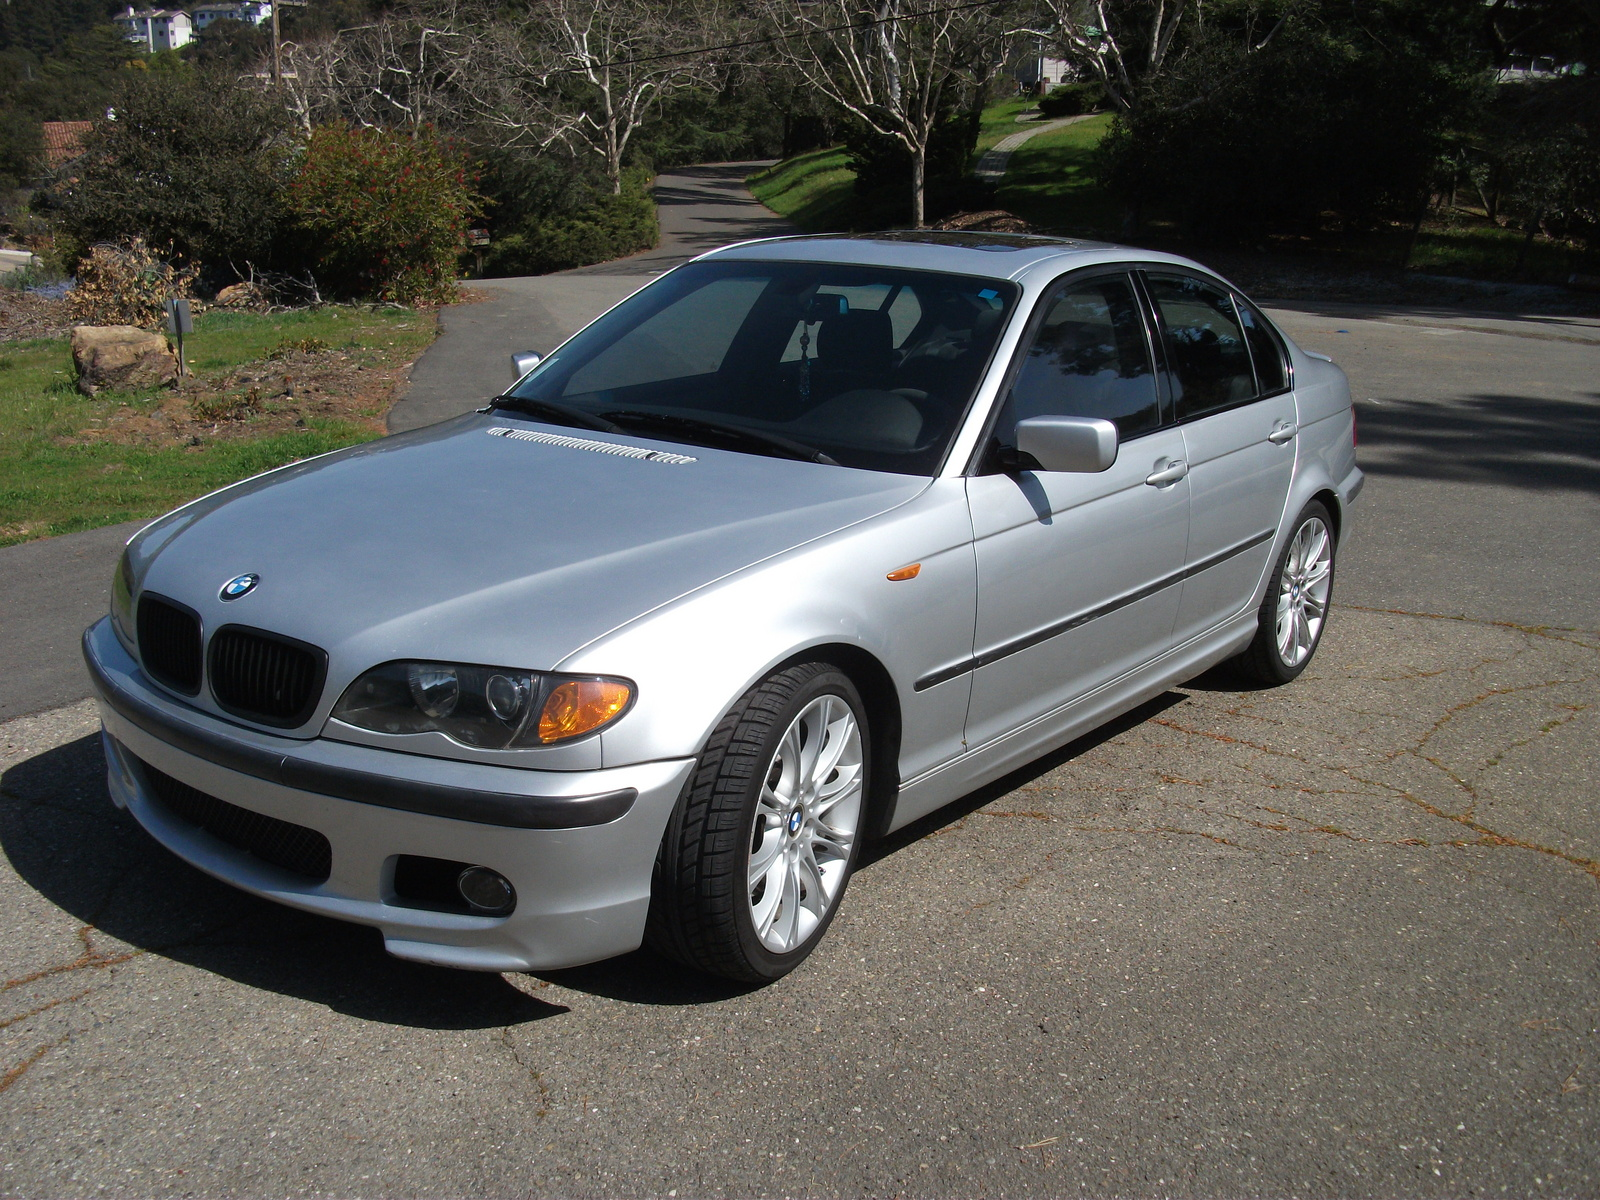 BMW 3 series 328xi 2005 photo - 3